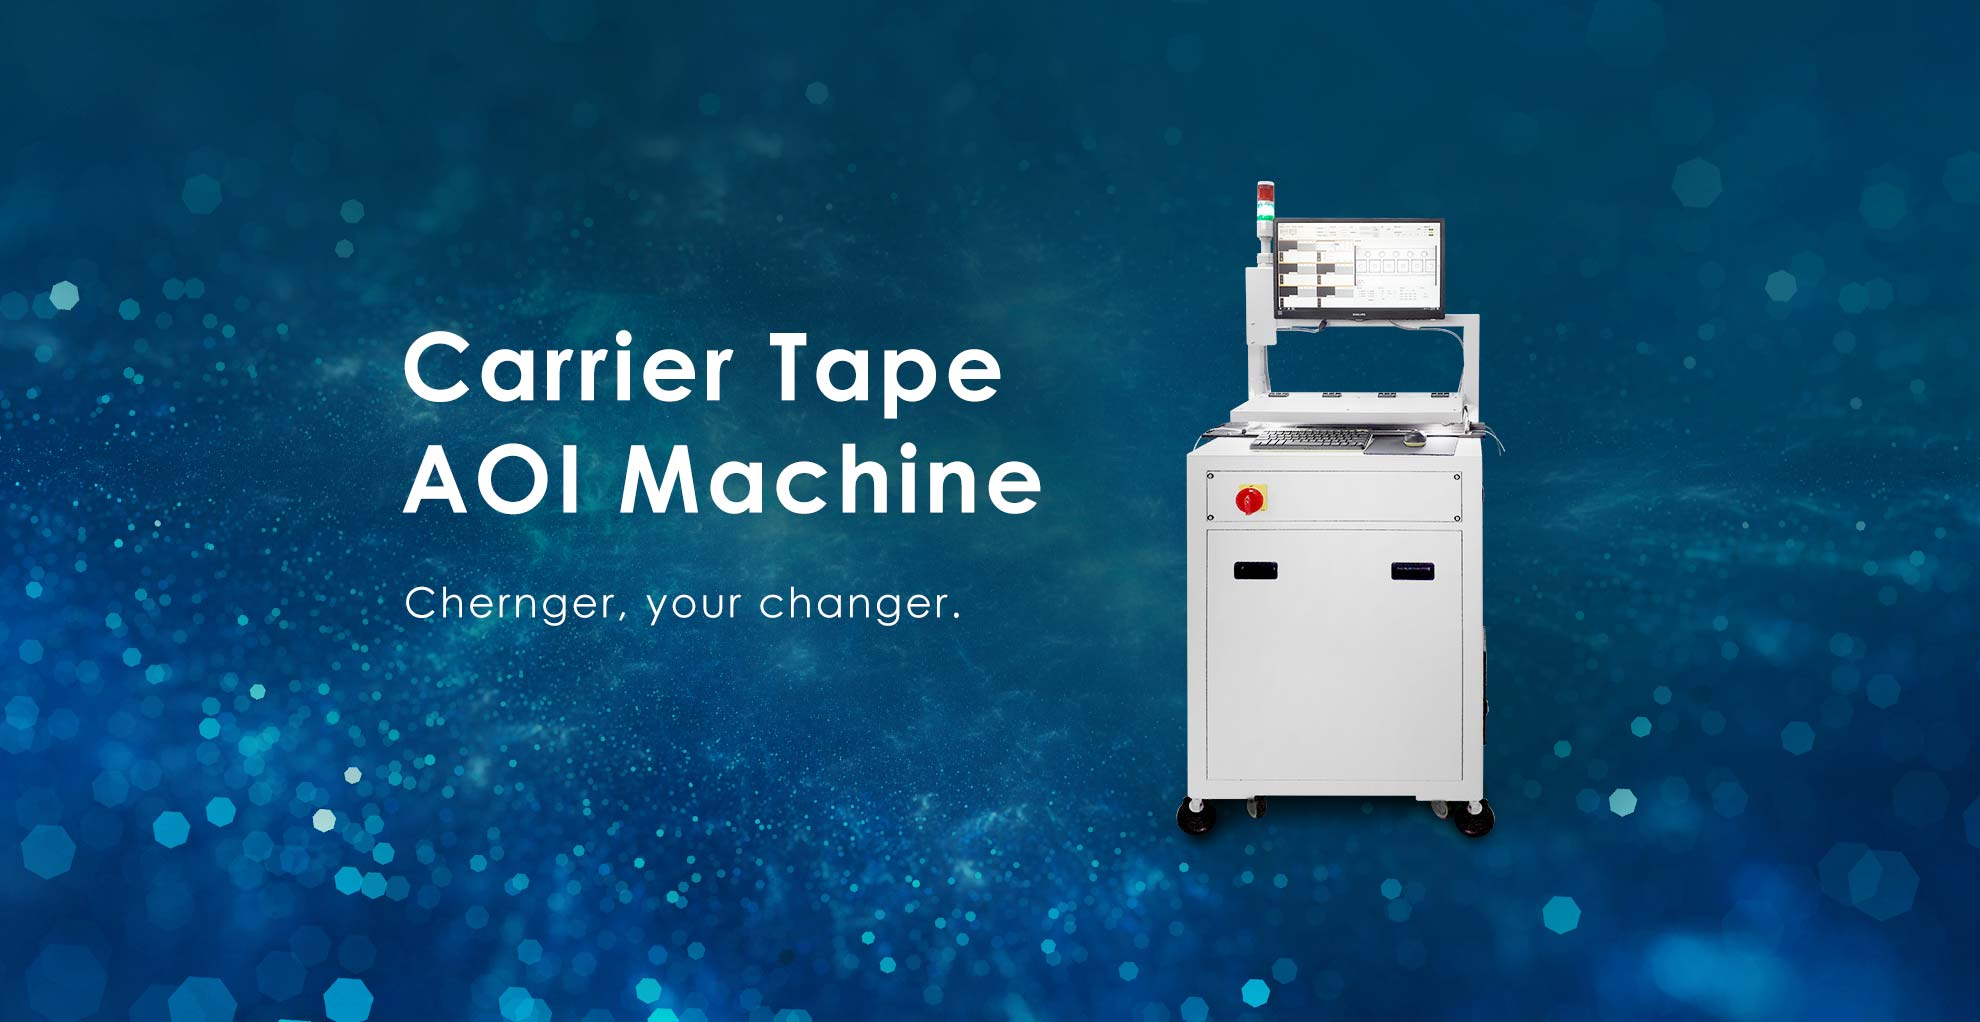 IC載帶瑕疵檢查機 Carrier Tape AOI Machine